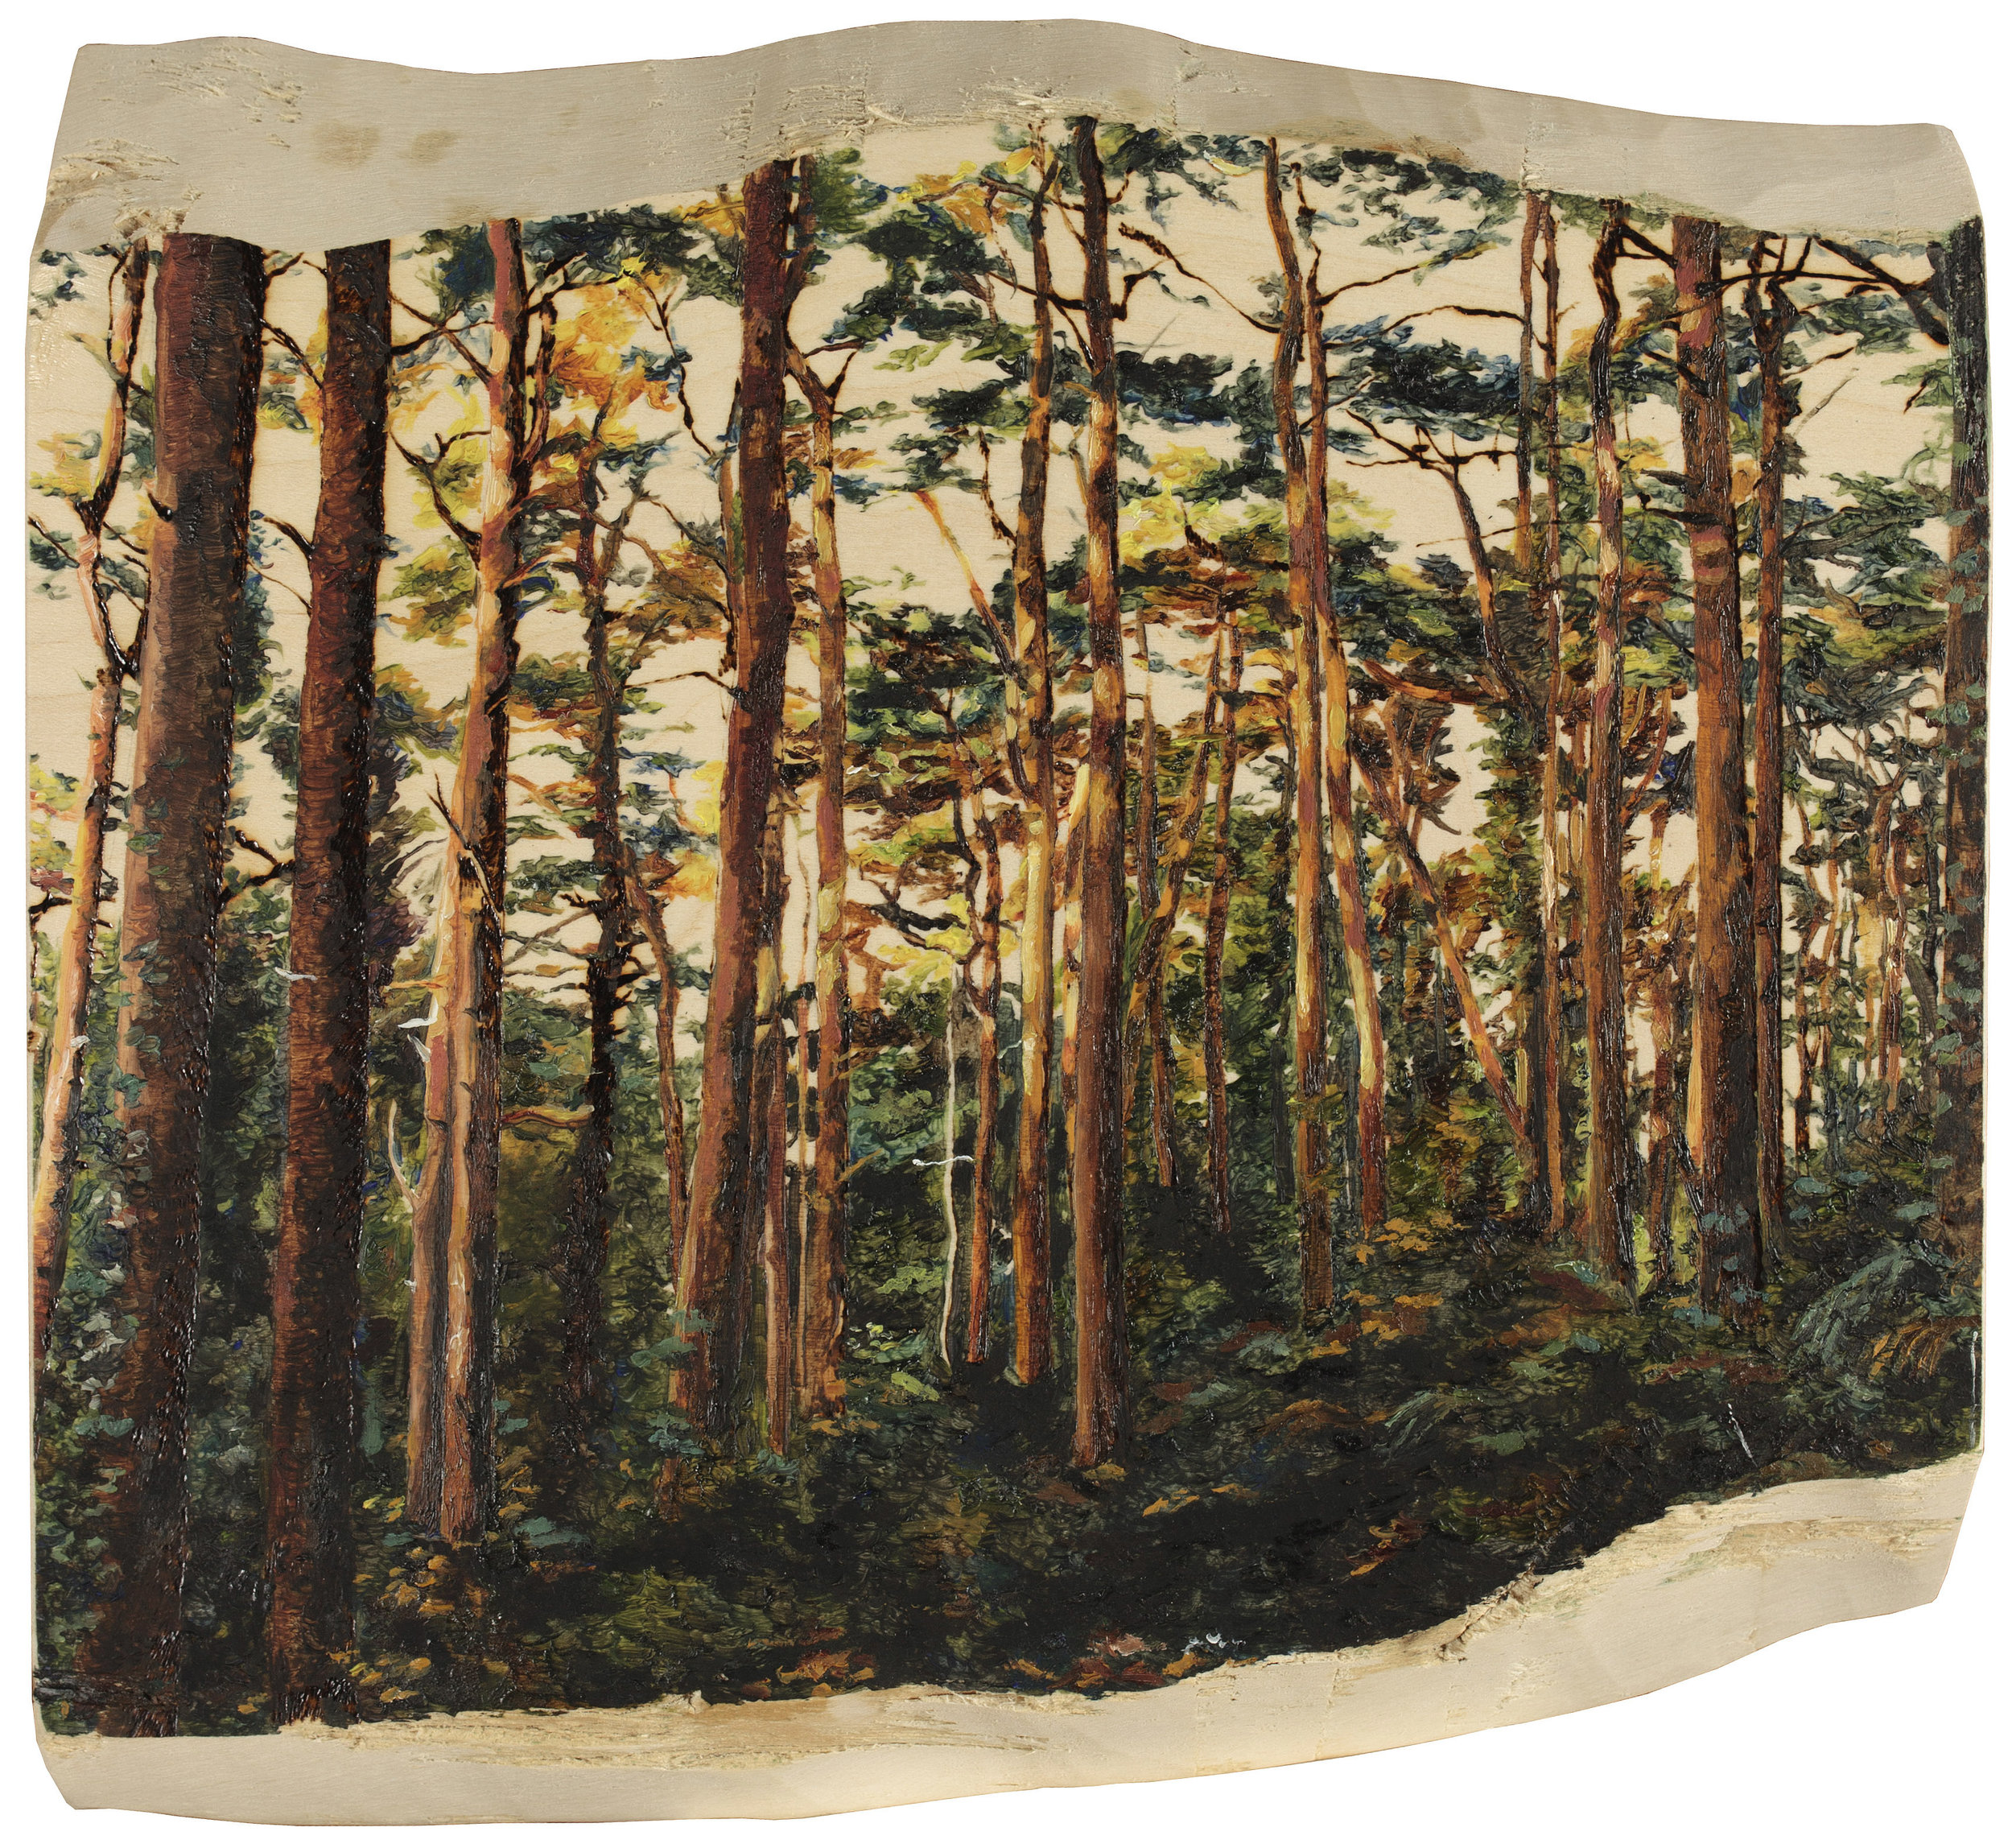 Tilia Holmes, Pine Forest, Pyrography and Oil paints on Wood, 27cm x 30cm x 3cm,  https://www.instagram.com/tiliaholmes/